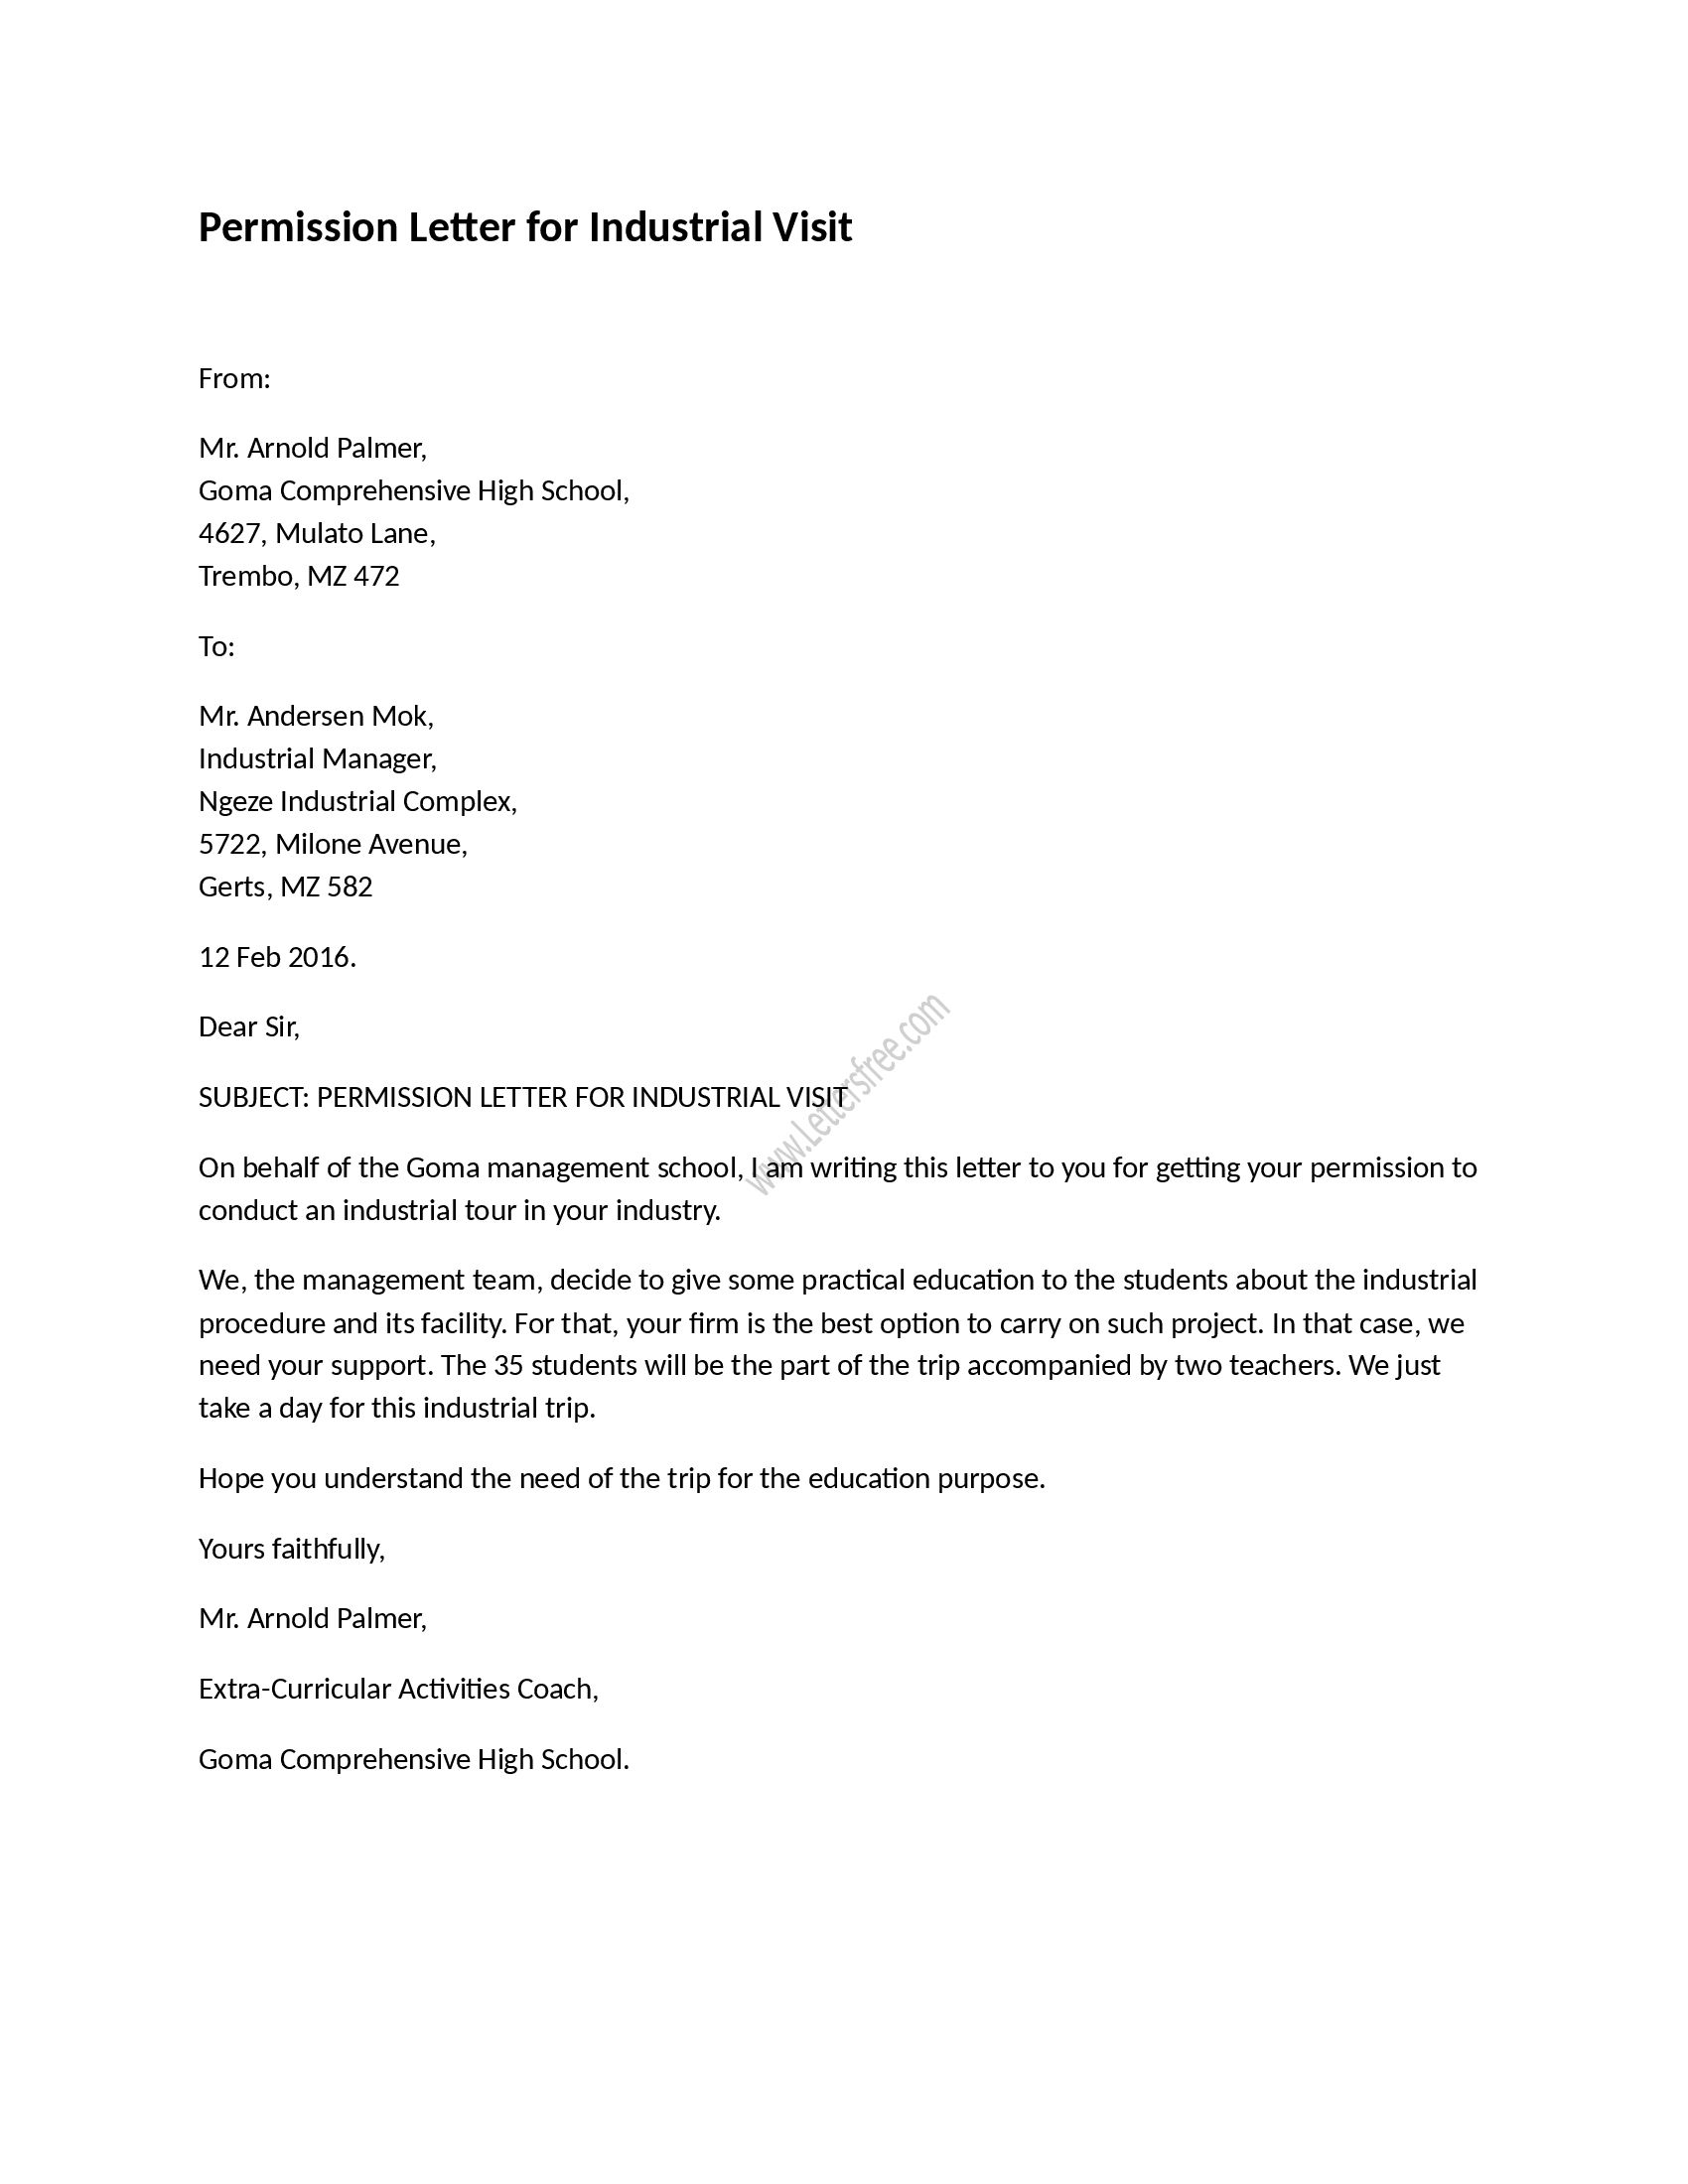 Board Member Removal Letter Template - Permission Letter for Industrial Visit Pinterest